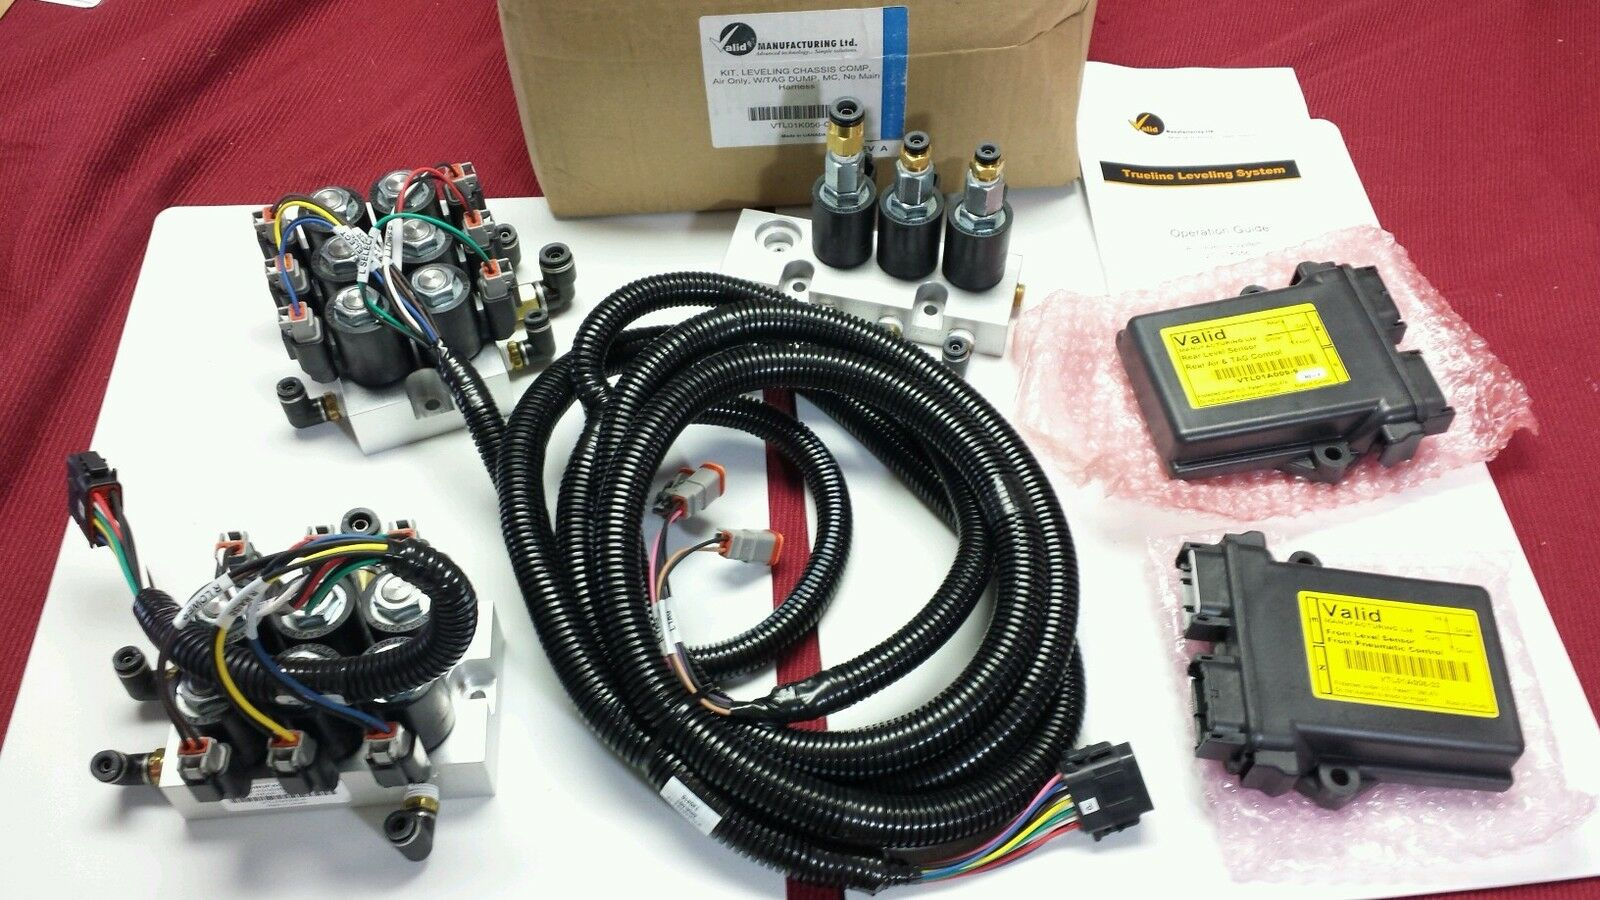 VTL01K056-CC kit15968 Valid Manufacturing RV leveling system Monaco chassis. NEW